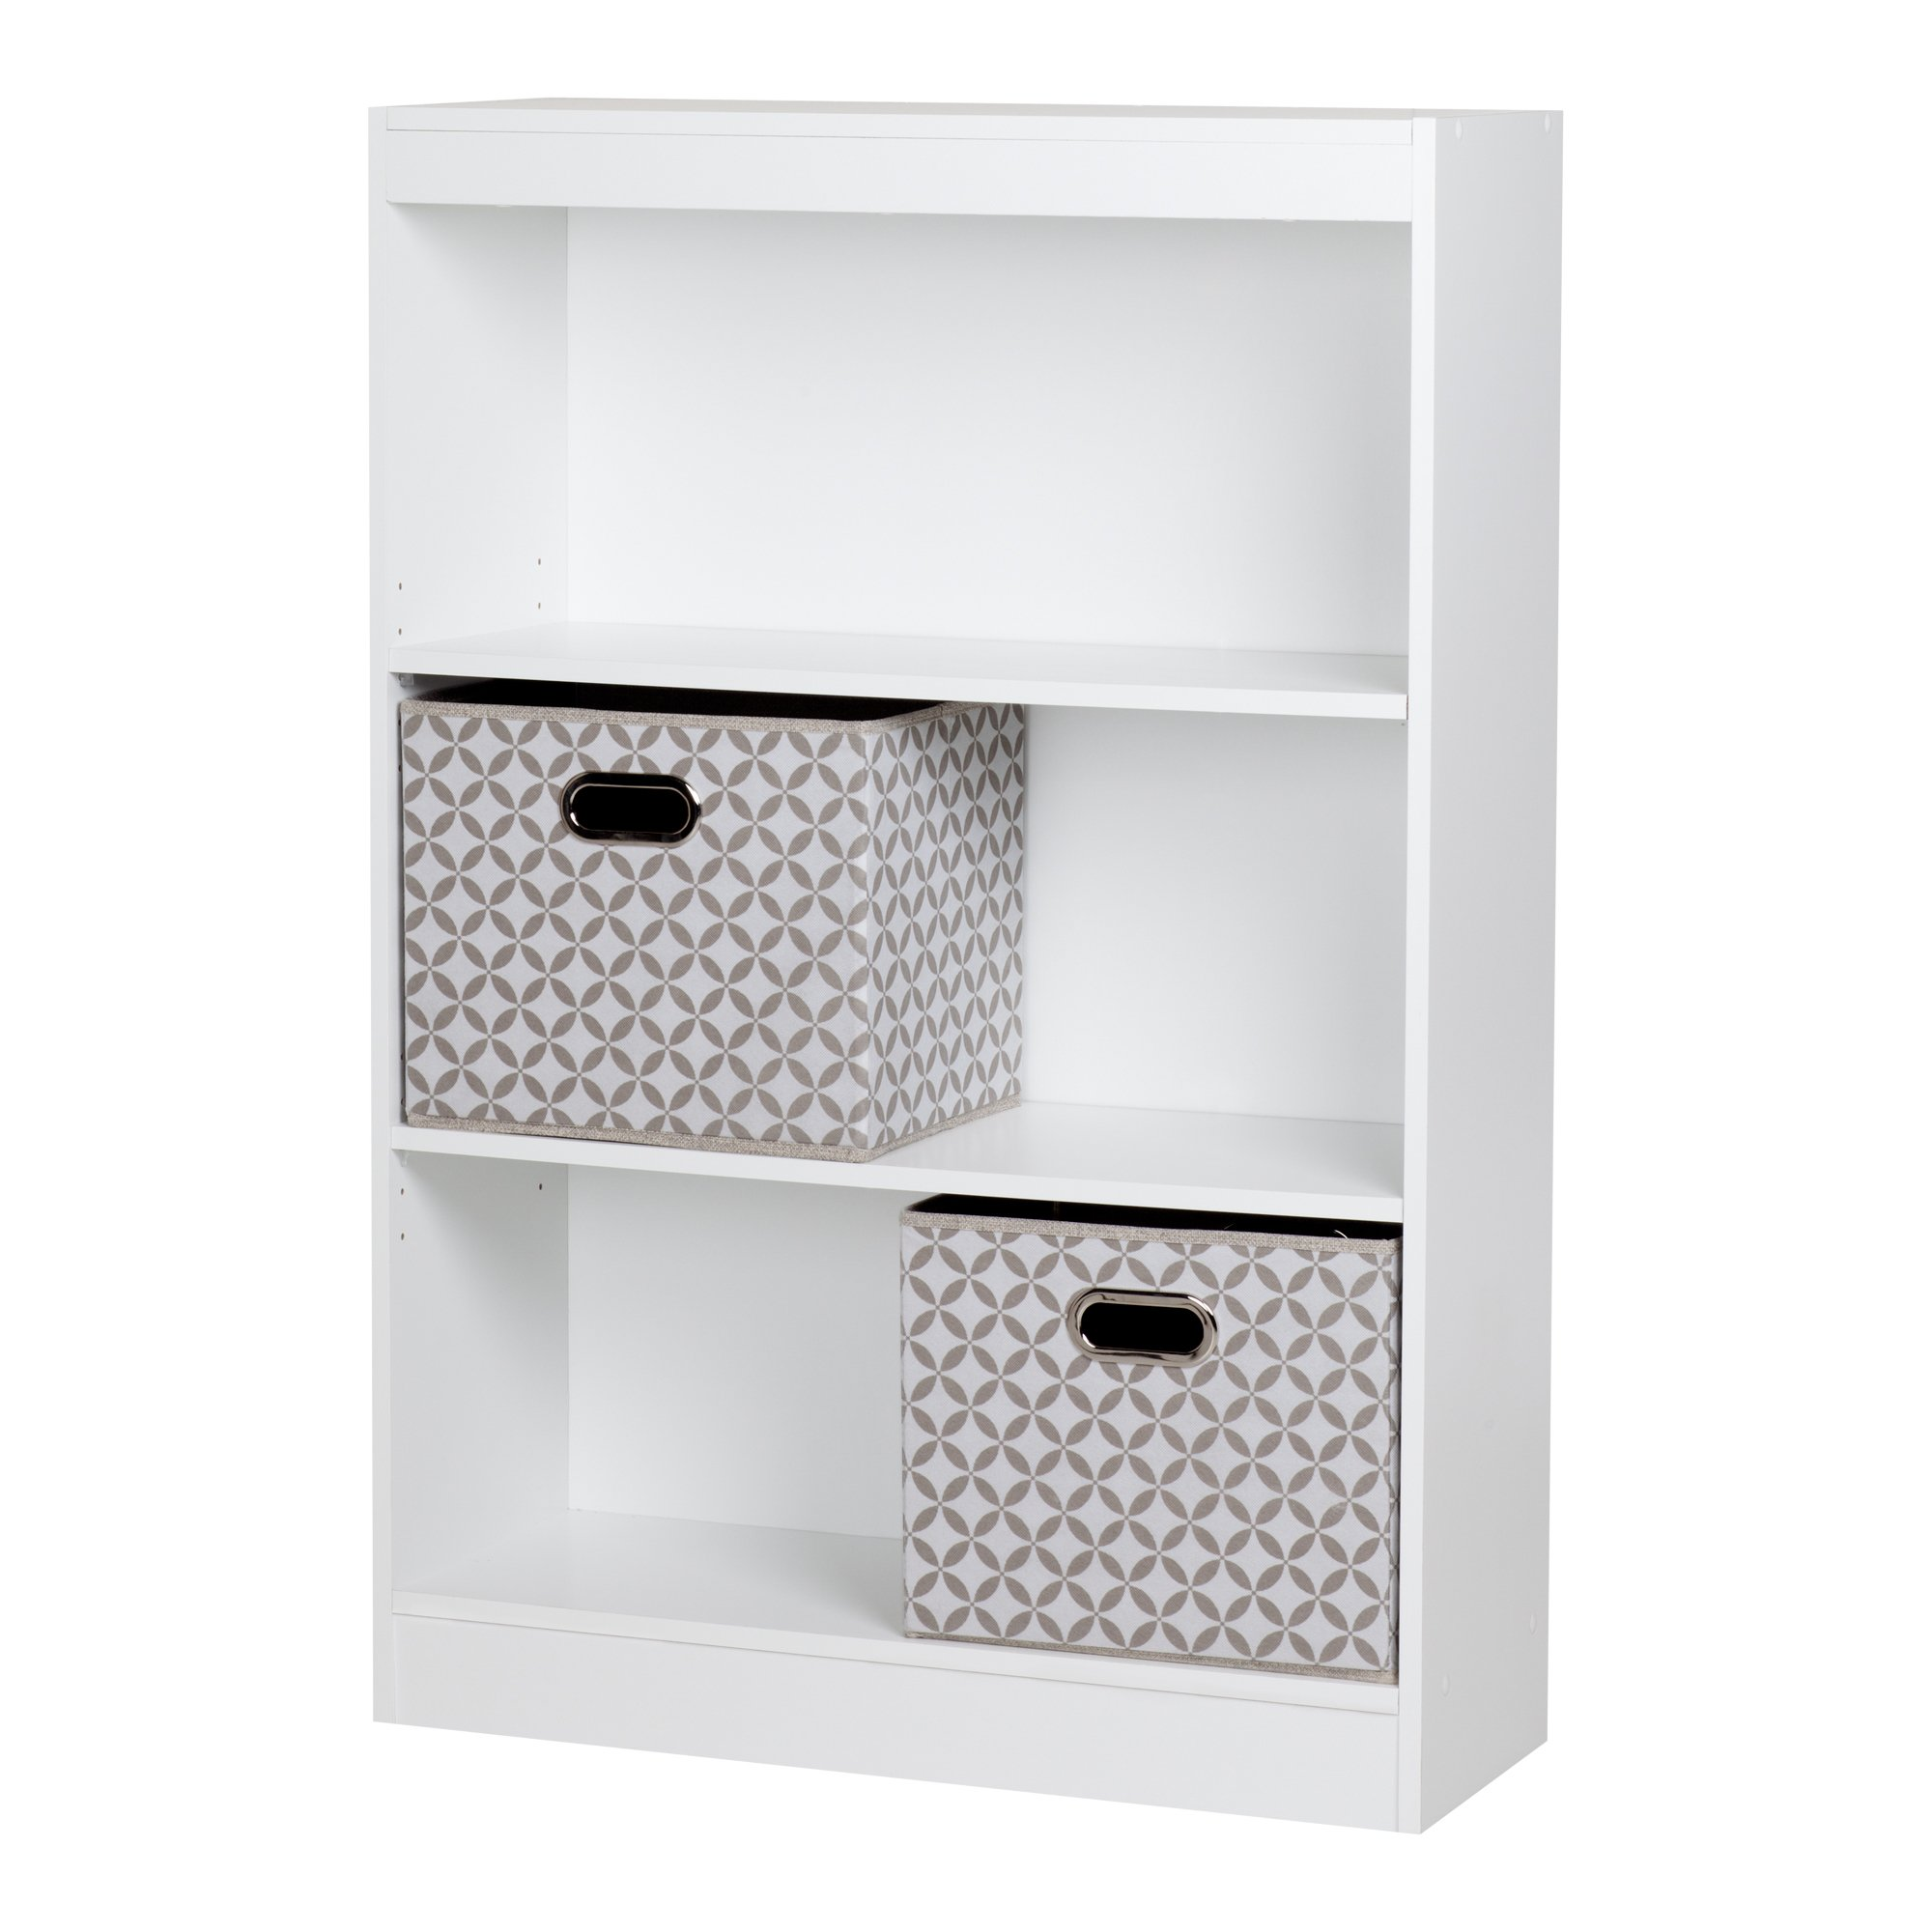 South Shore Axess 3-Shelf Bookcase with 2 Fabric Storage Baskets, Pure White by South Shore (Image #1)